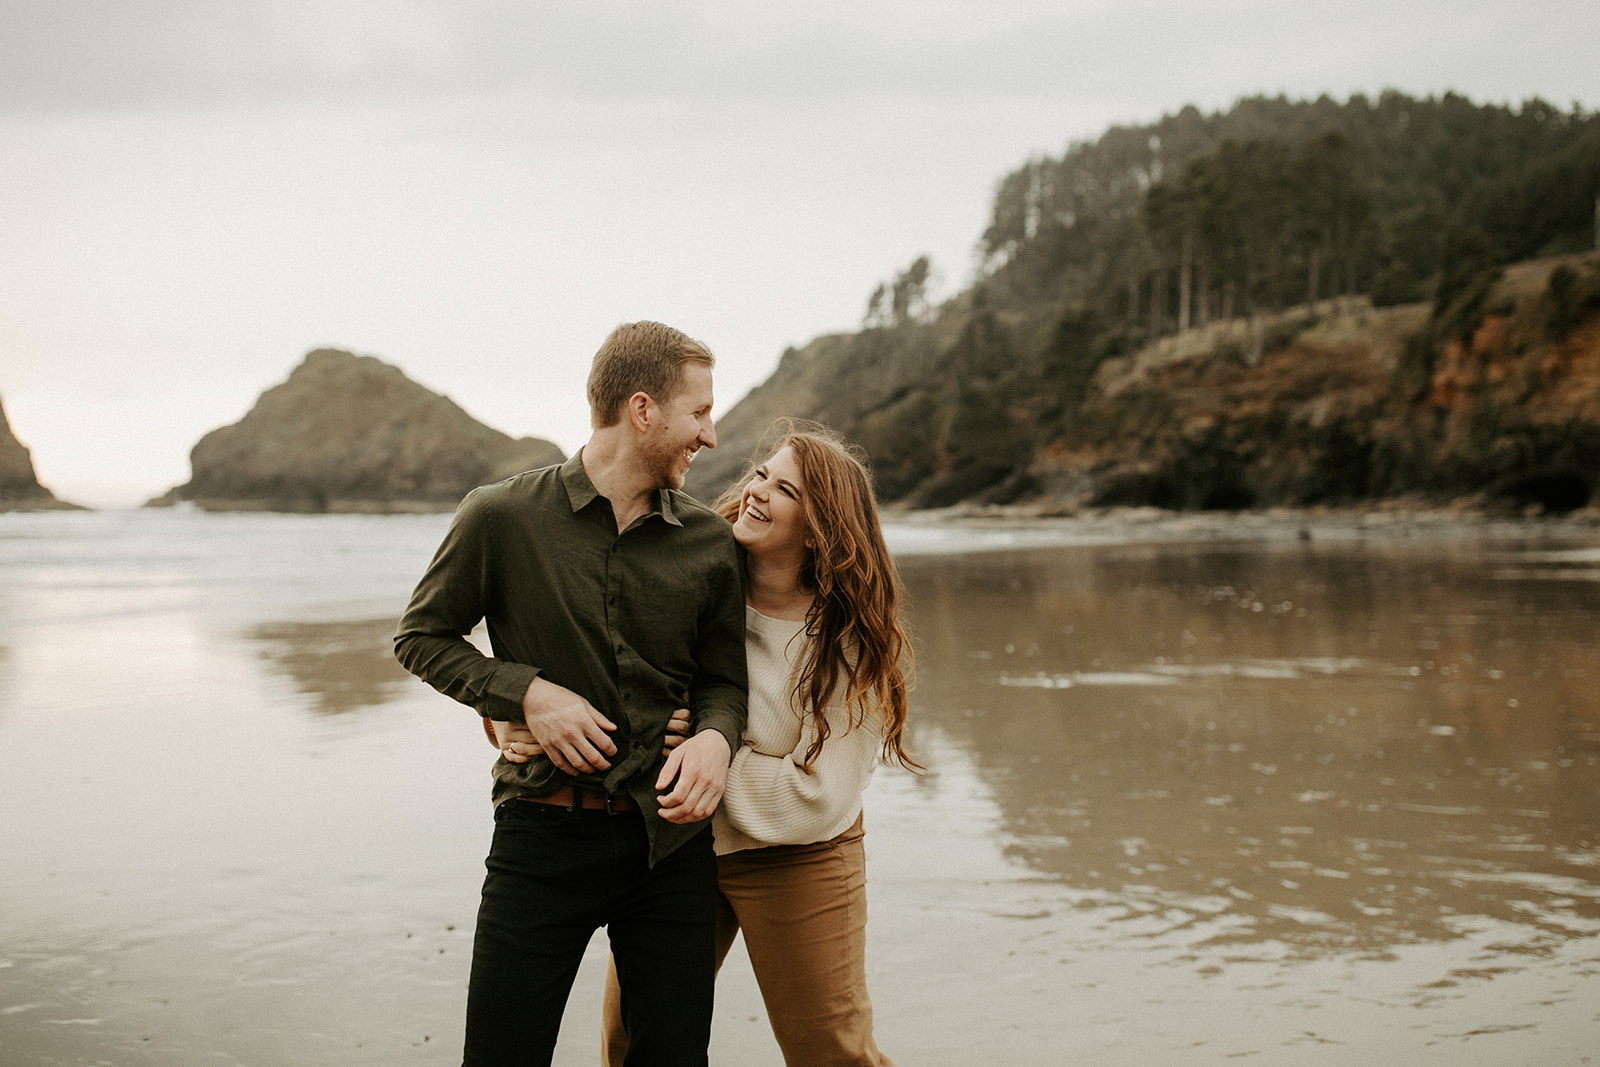 Emily_and_Jeff_Oregon_Coast_Engagement_Dawn_Charles_Photographer-206.jpg